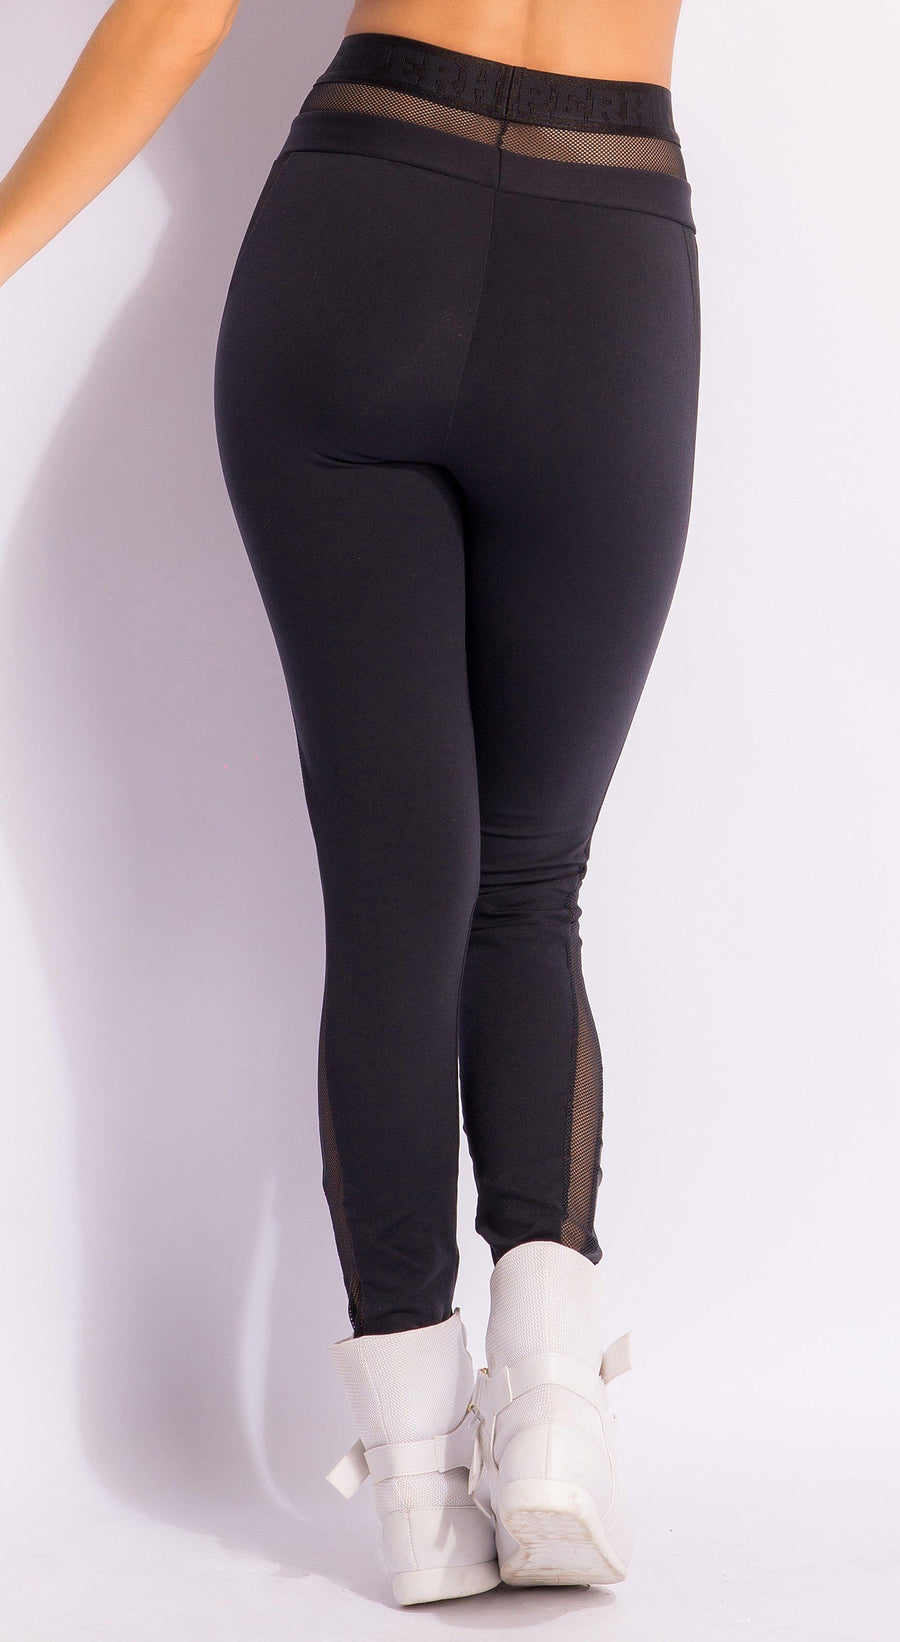 Brazilian Workout Legging - Confidence Black